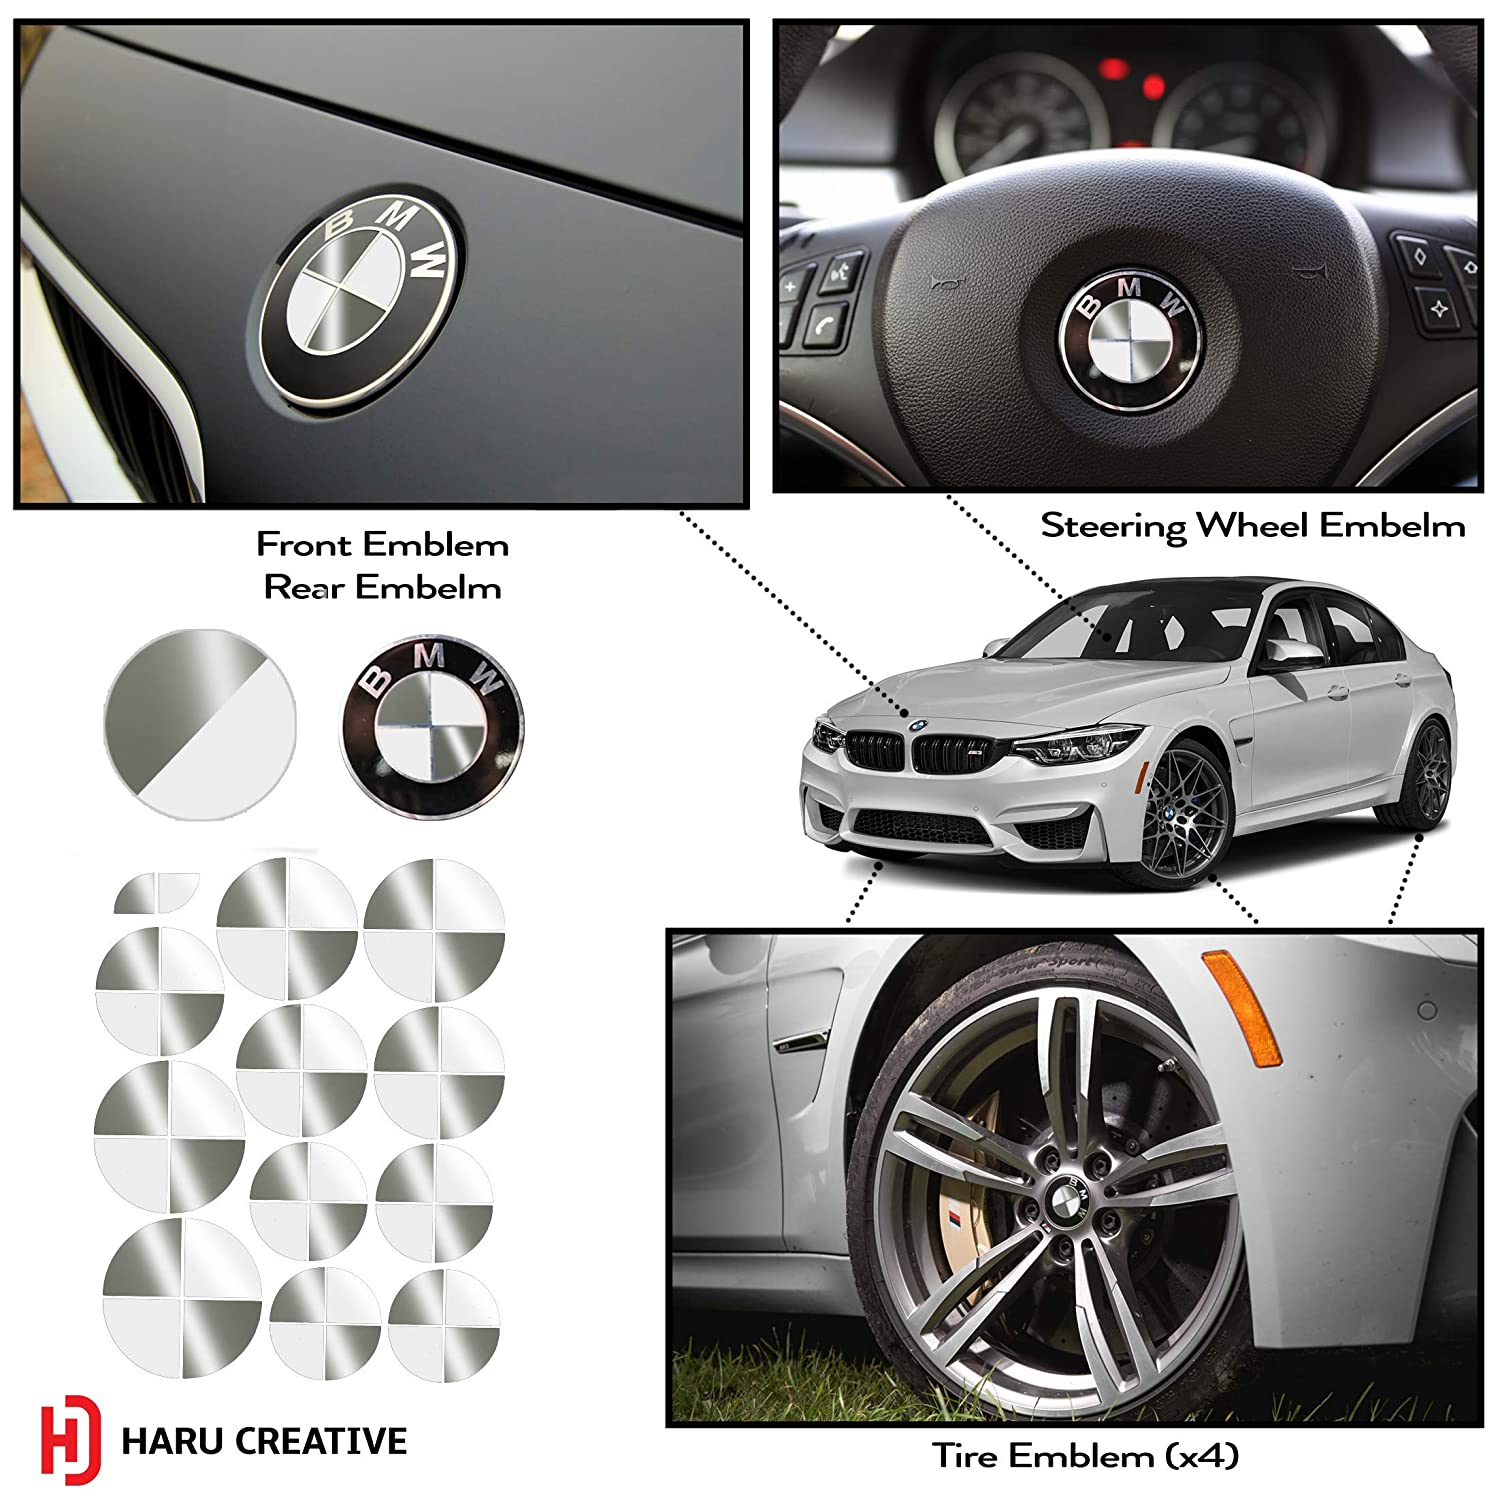 Vinyl Overlay Aftermarket Decal Sticker Compatible with and Fits All BMW Emblem Caps for Hood Trunk Wheel Fender - Gloss White and Blue Emblem Not Included Haru Creative